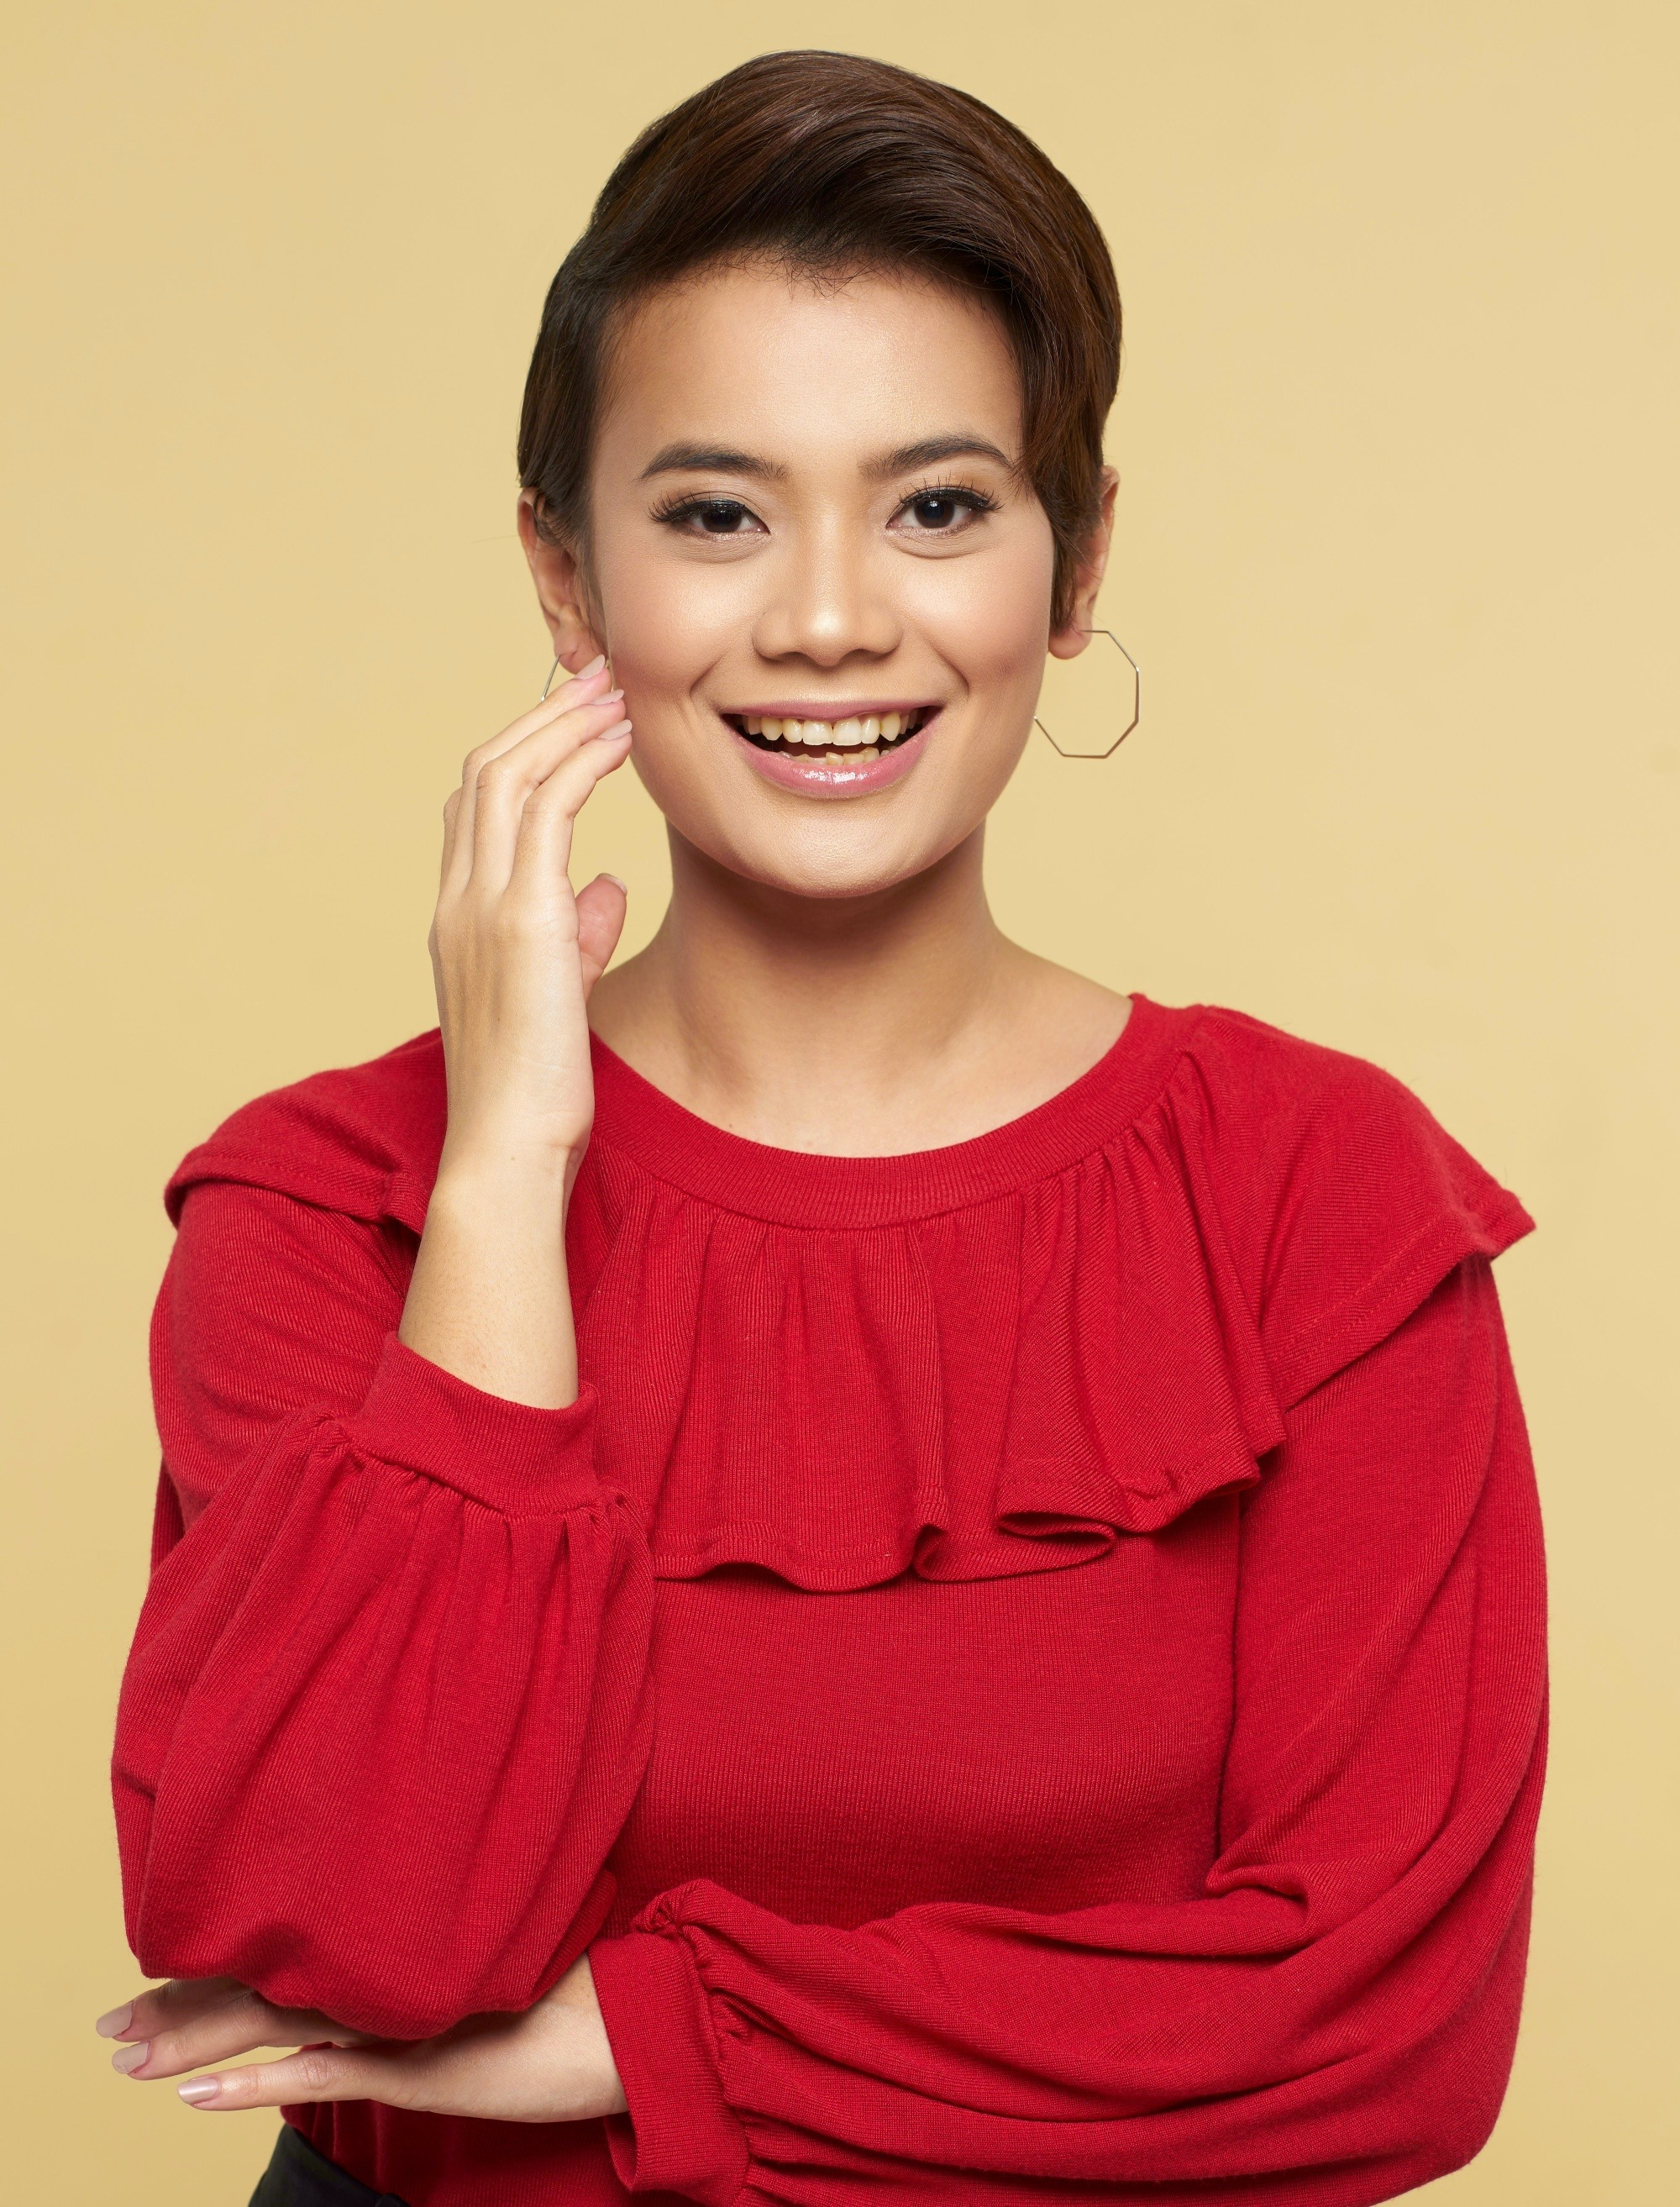 Graduation hairstyles: Asian woman with pixie cut wearing a red blouse smiling